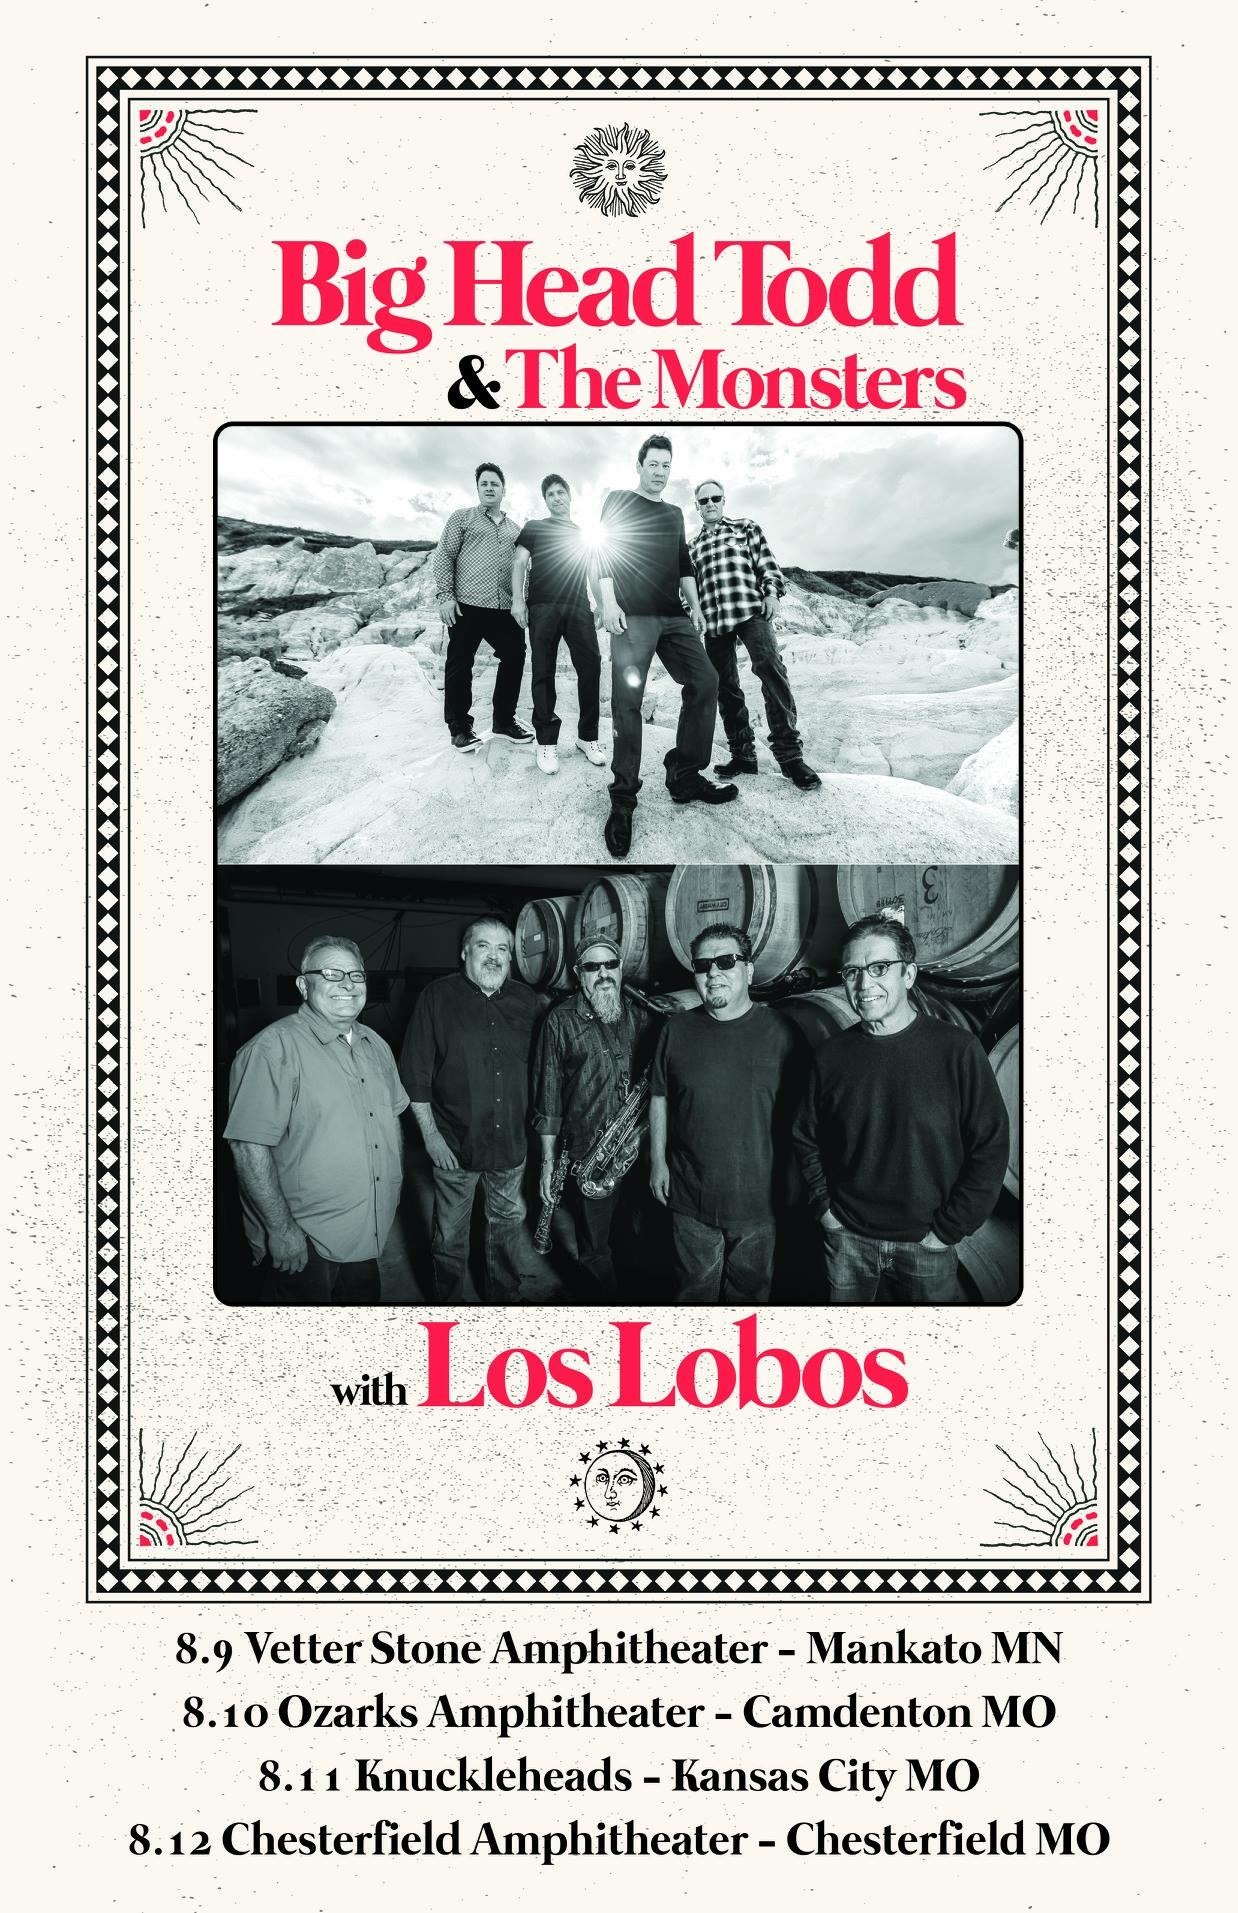 Big Head Todd hitting the road with Los Lobos this summer! Tickets on sale Fri. May 4th!